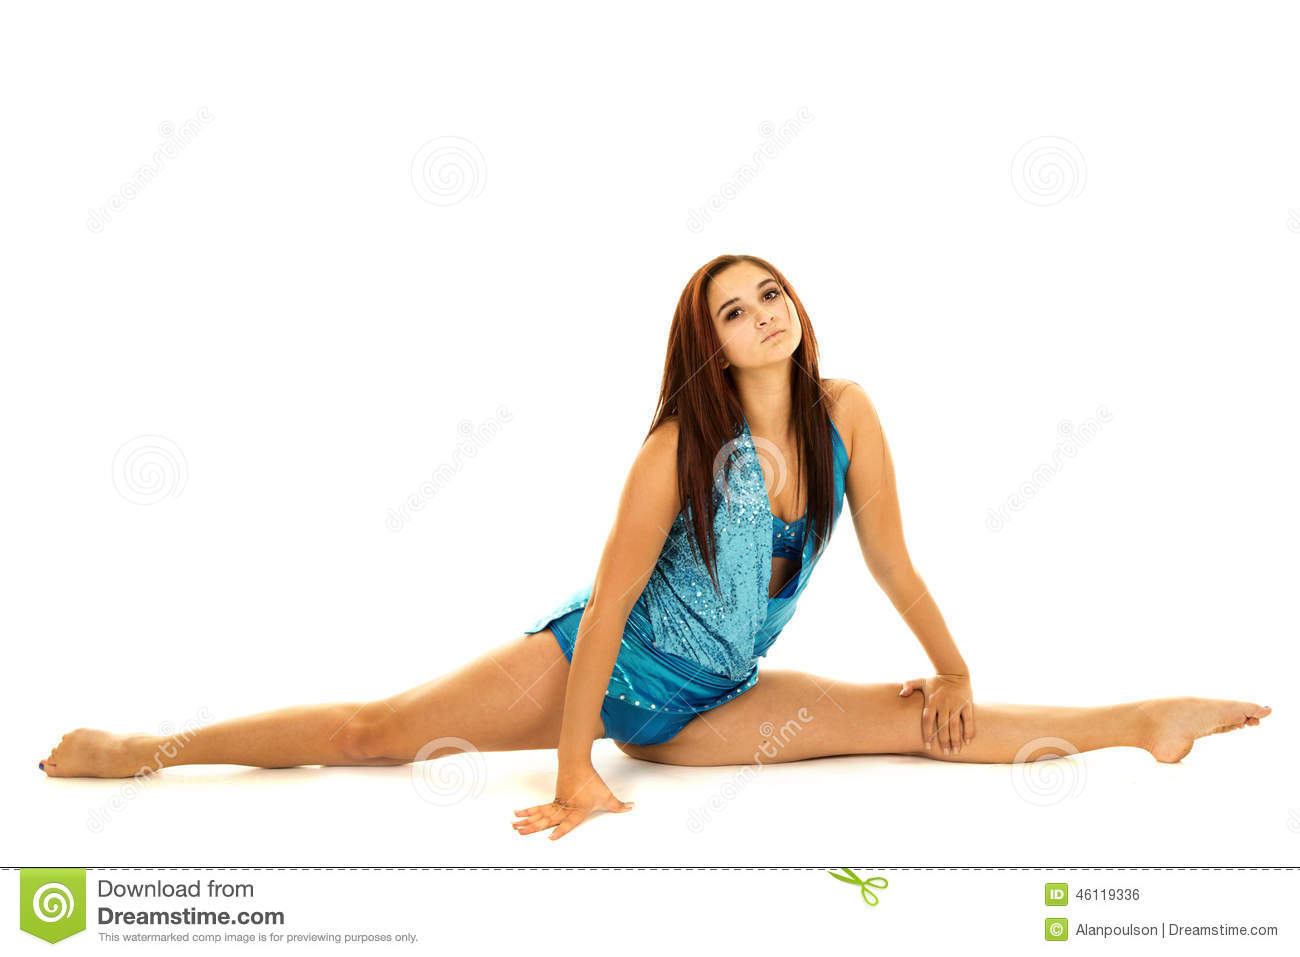 woman doing nude splits